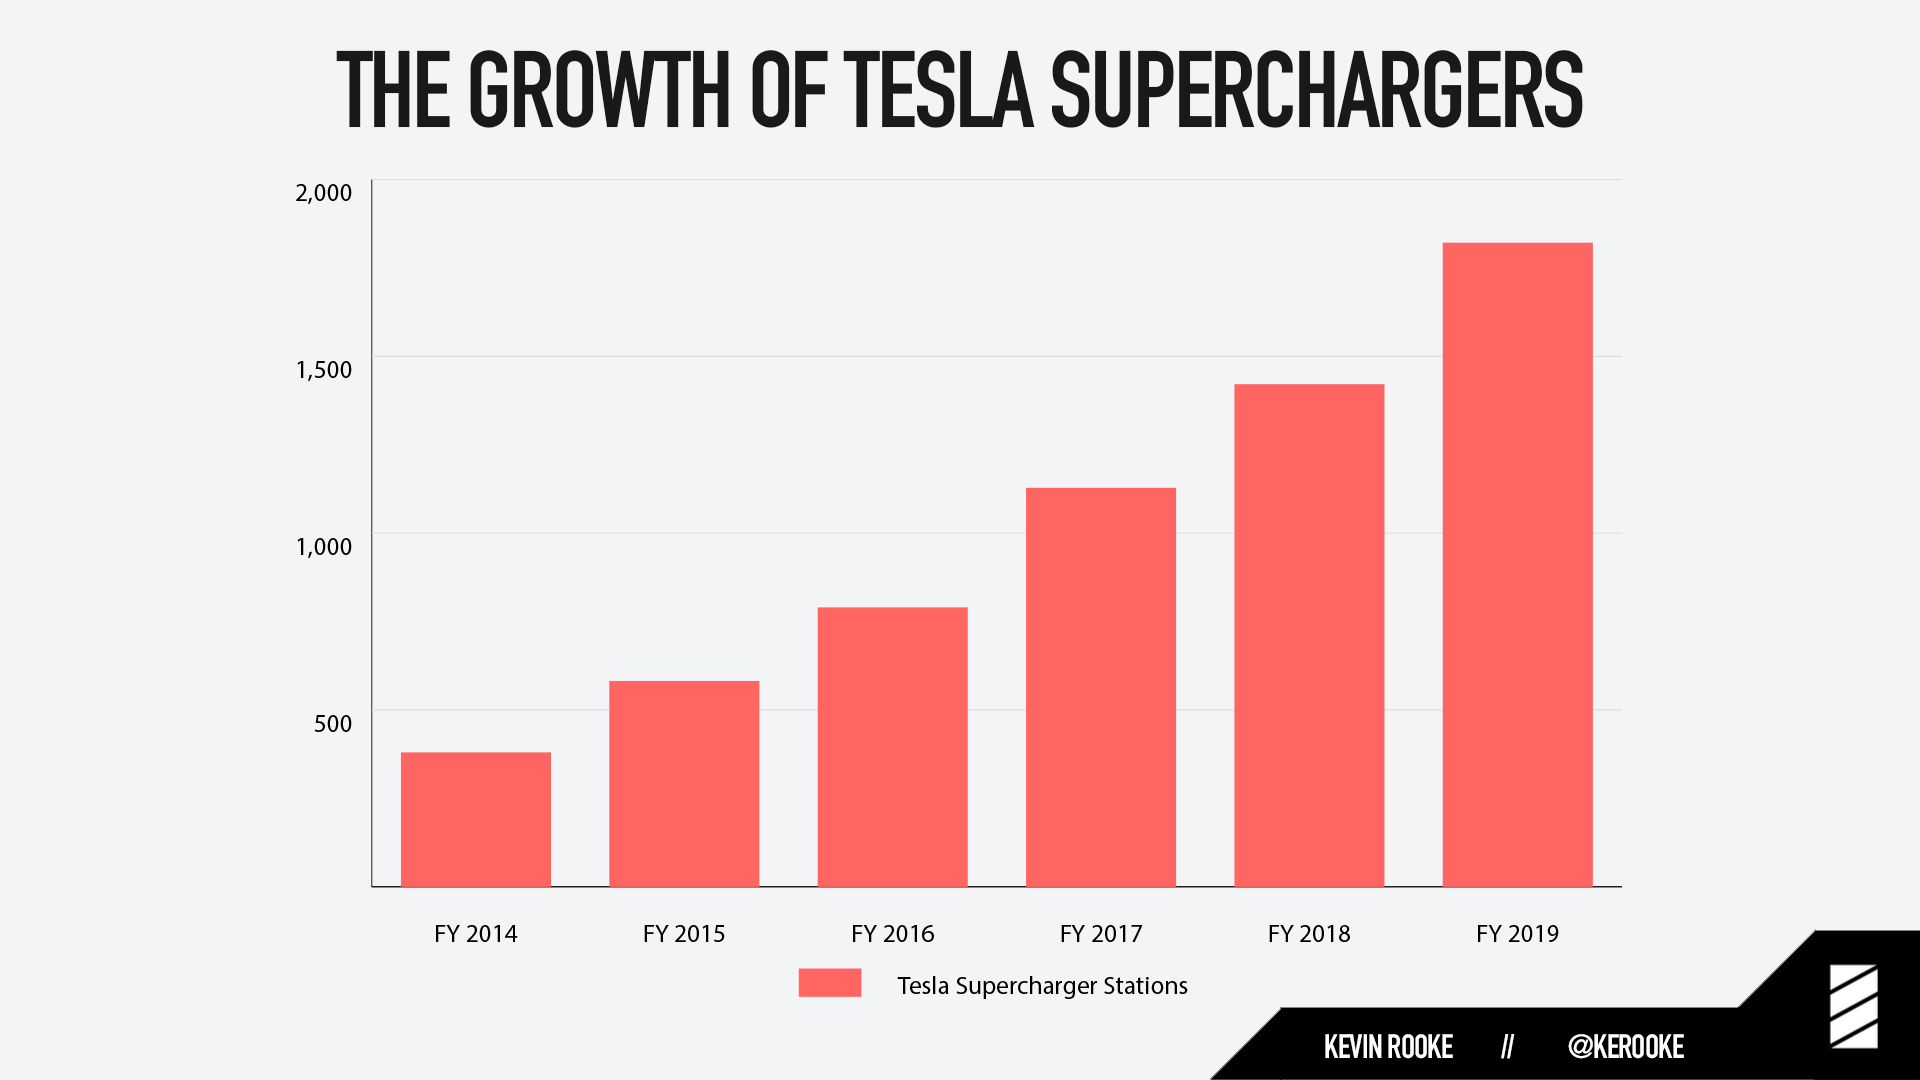 Tesla superchargers are great EV chargers, but slow compared to gas pumps. So how did Tesla disrupt the gas station with an inferior product?